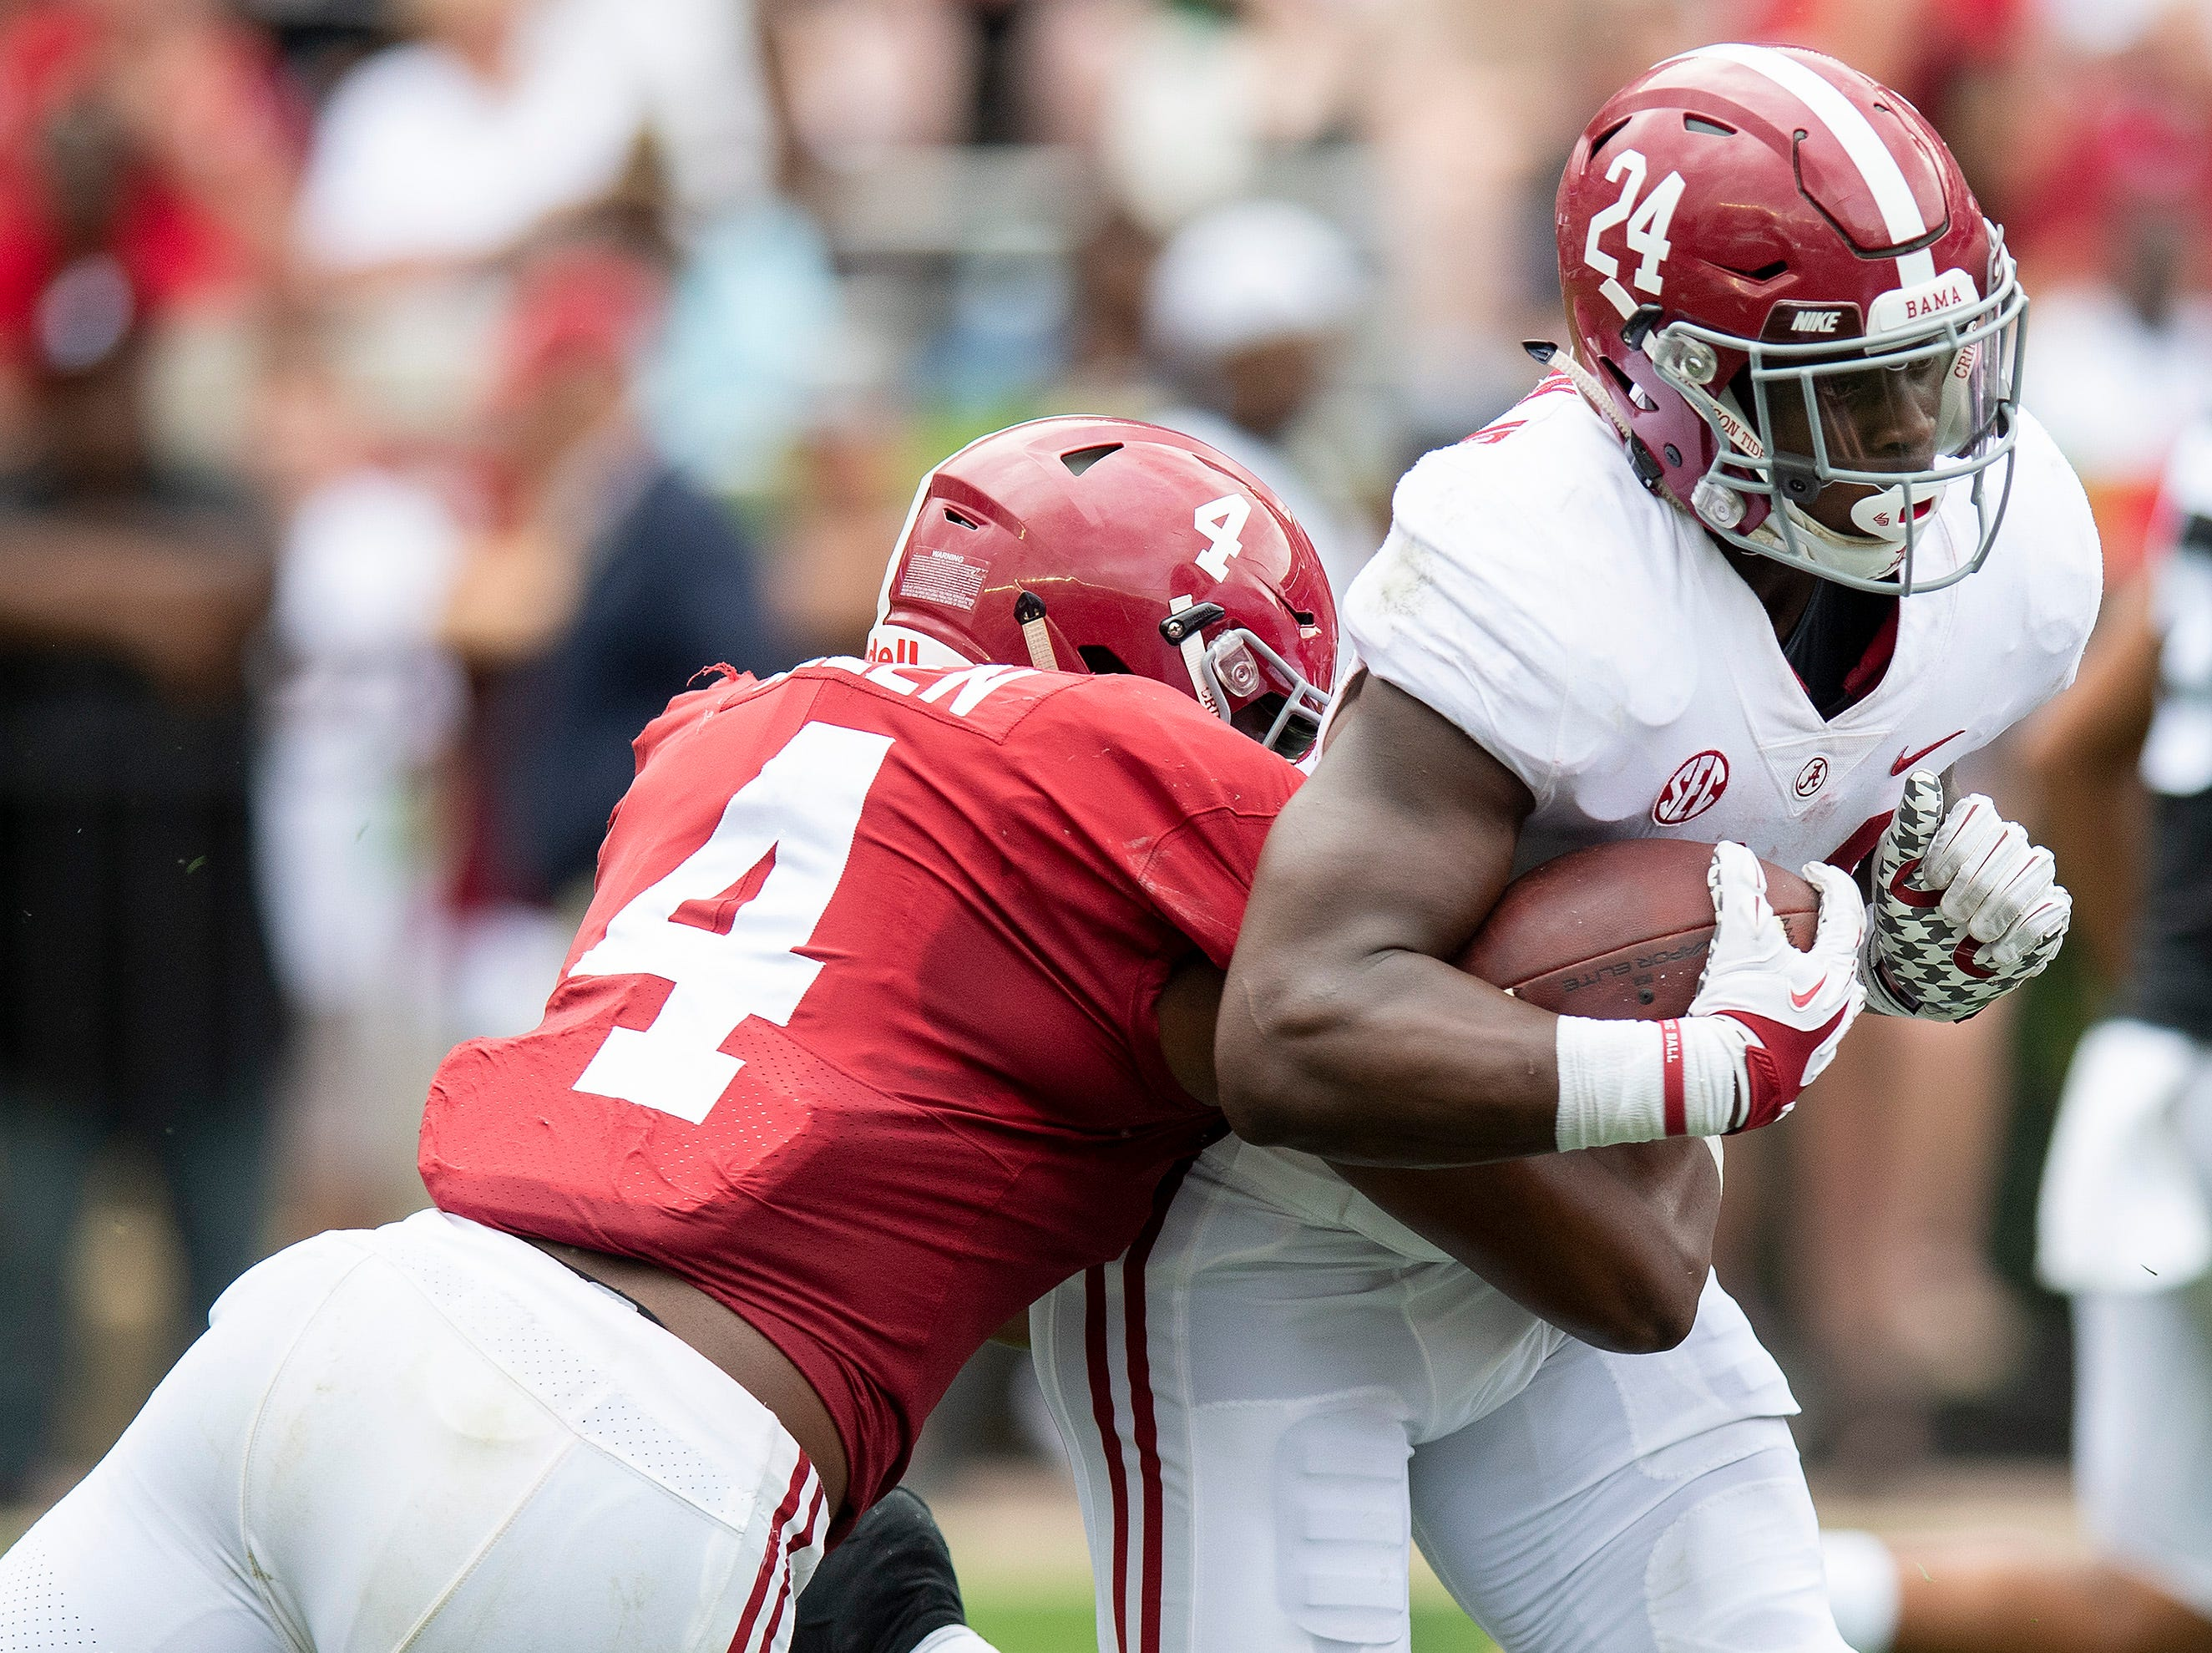 Linebacker Christopher Allen (4) wraps up running back Brian Robinson, Jr., (24) during first half action in the Alabama A-Day spring football scrimmage game at Bryant Denny Stadium in Tuscaloosa, Ala., on Saturday April 13, 2019.